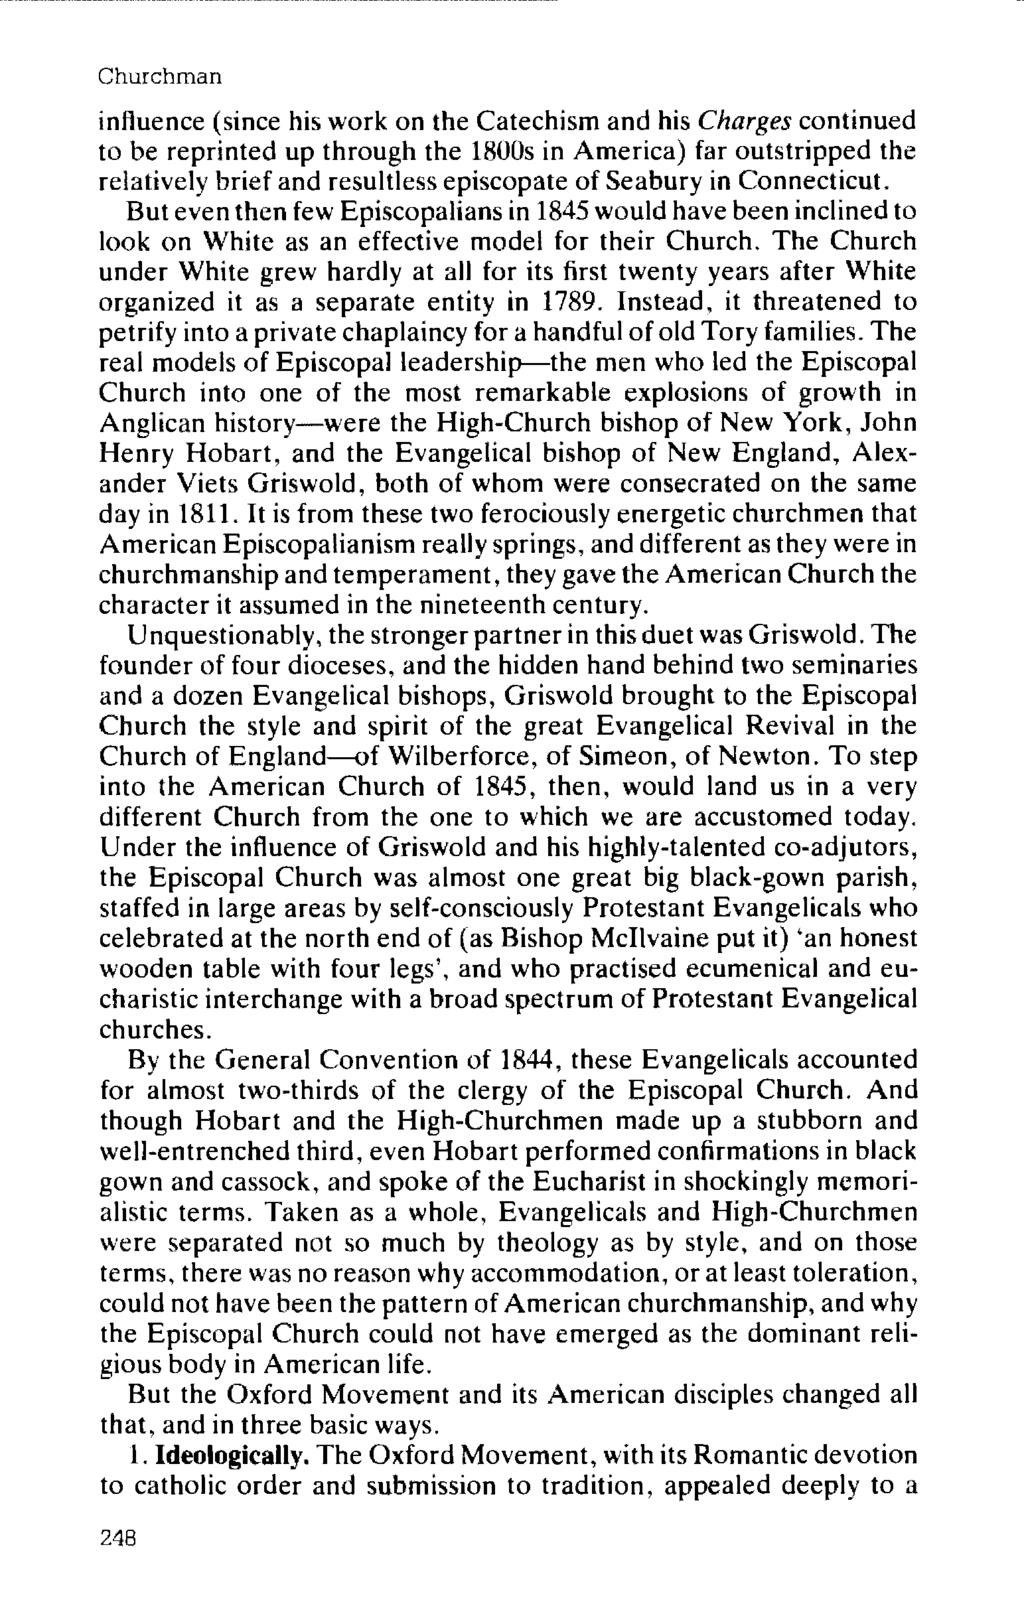 Churchman influence (since his work on the Catechism and his Charges continued to be reprinted up through the 1800s in America) far outstripped the relatively brief and resultless episcopate of